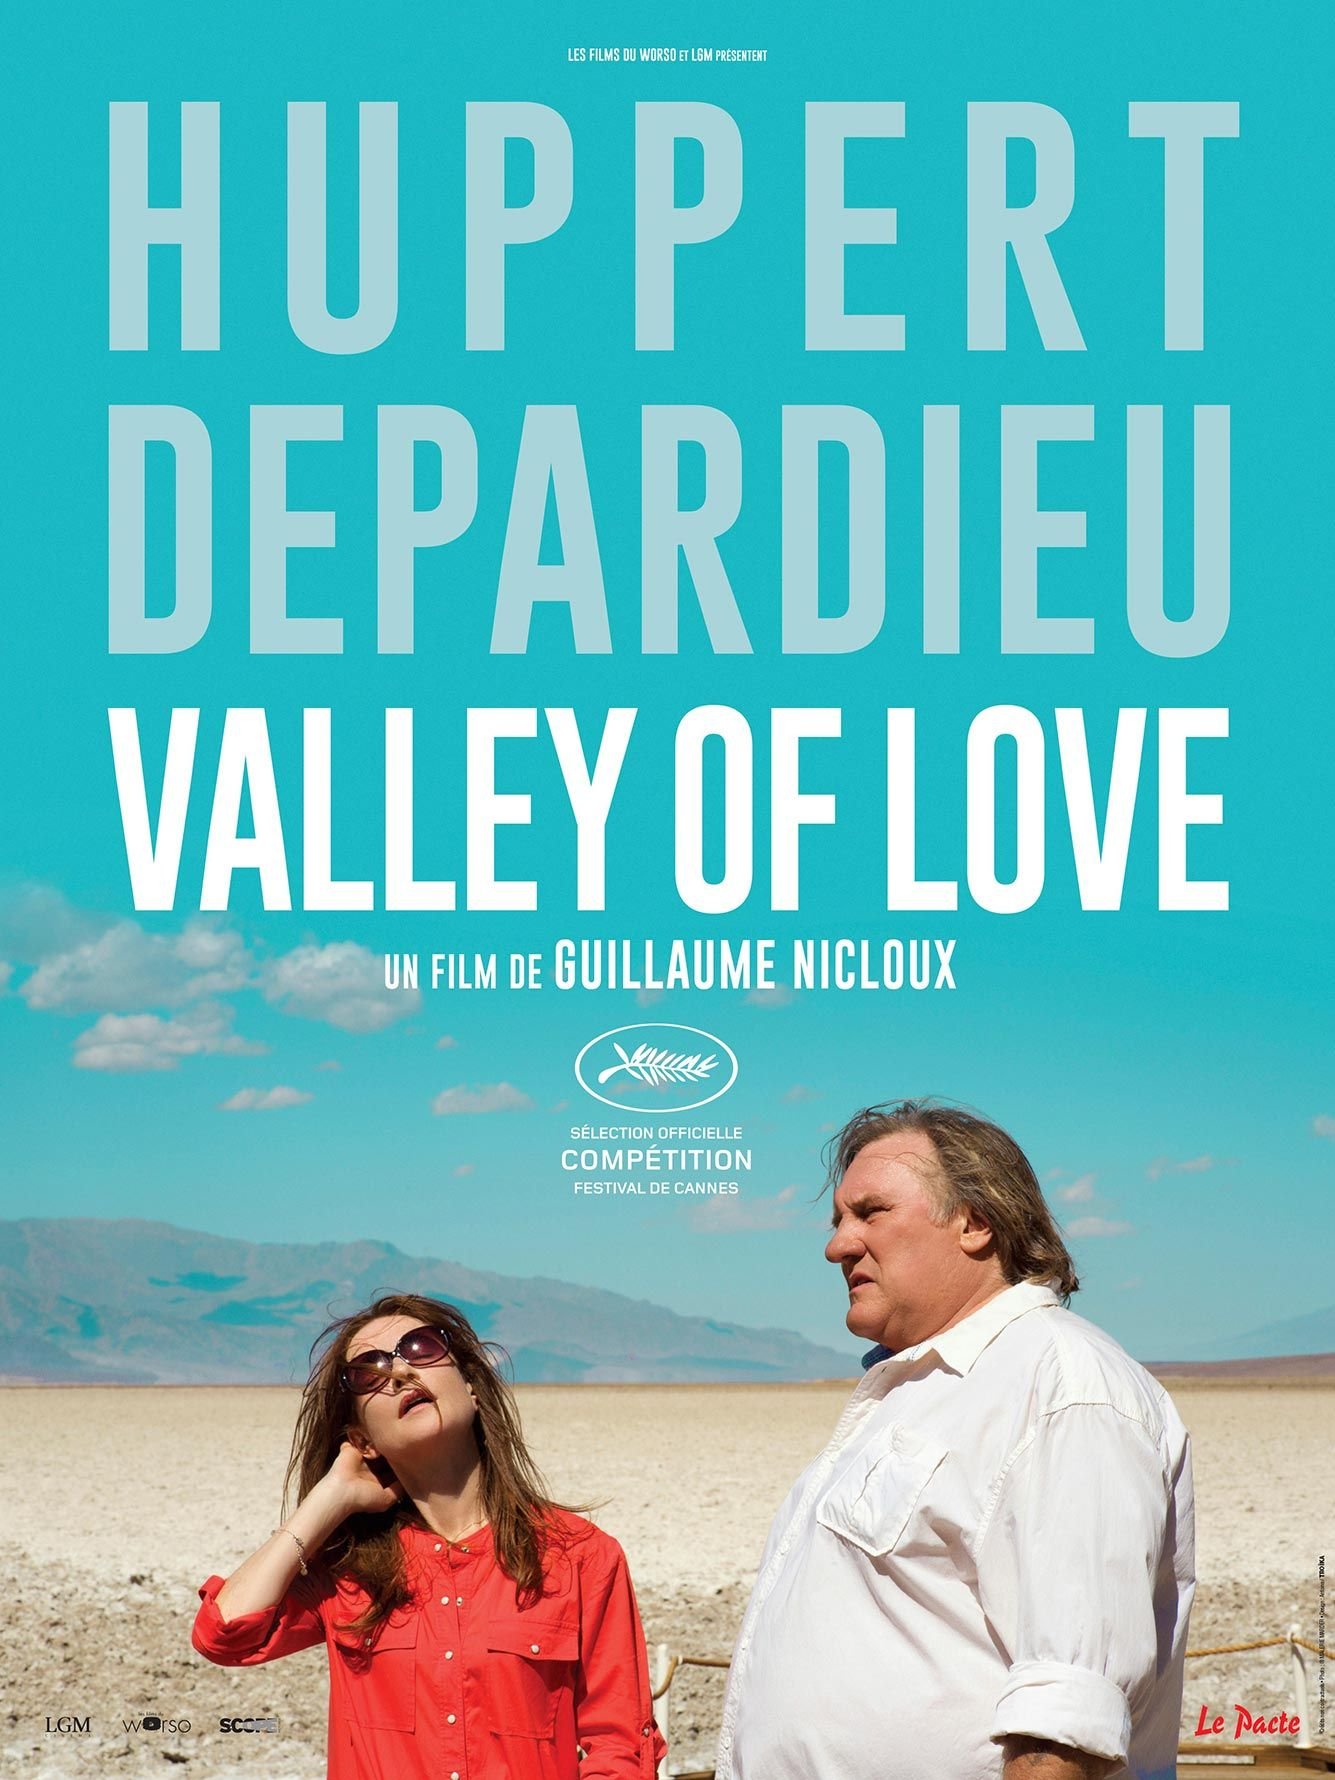 depardieu huppert california valley of love dieulois